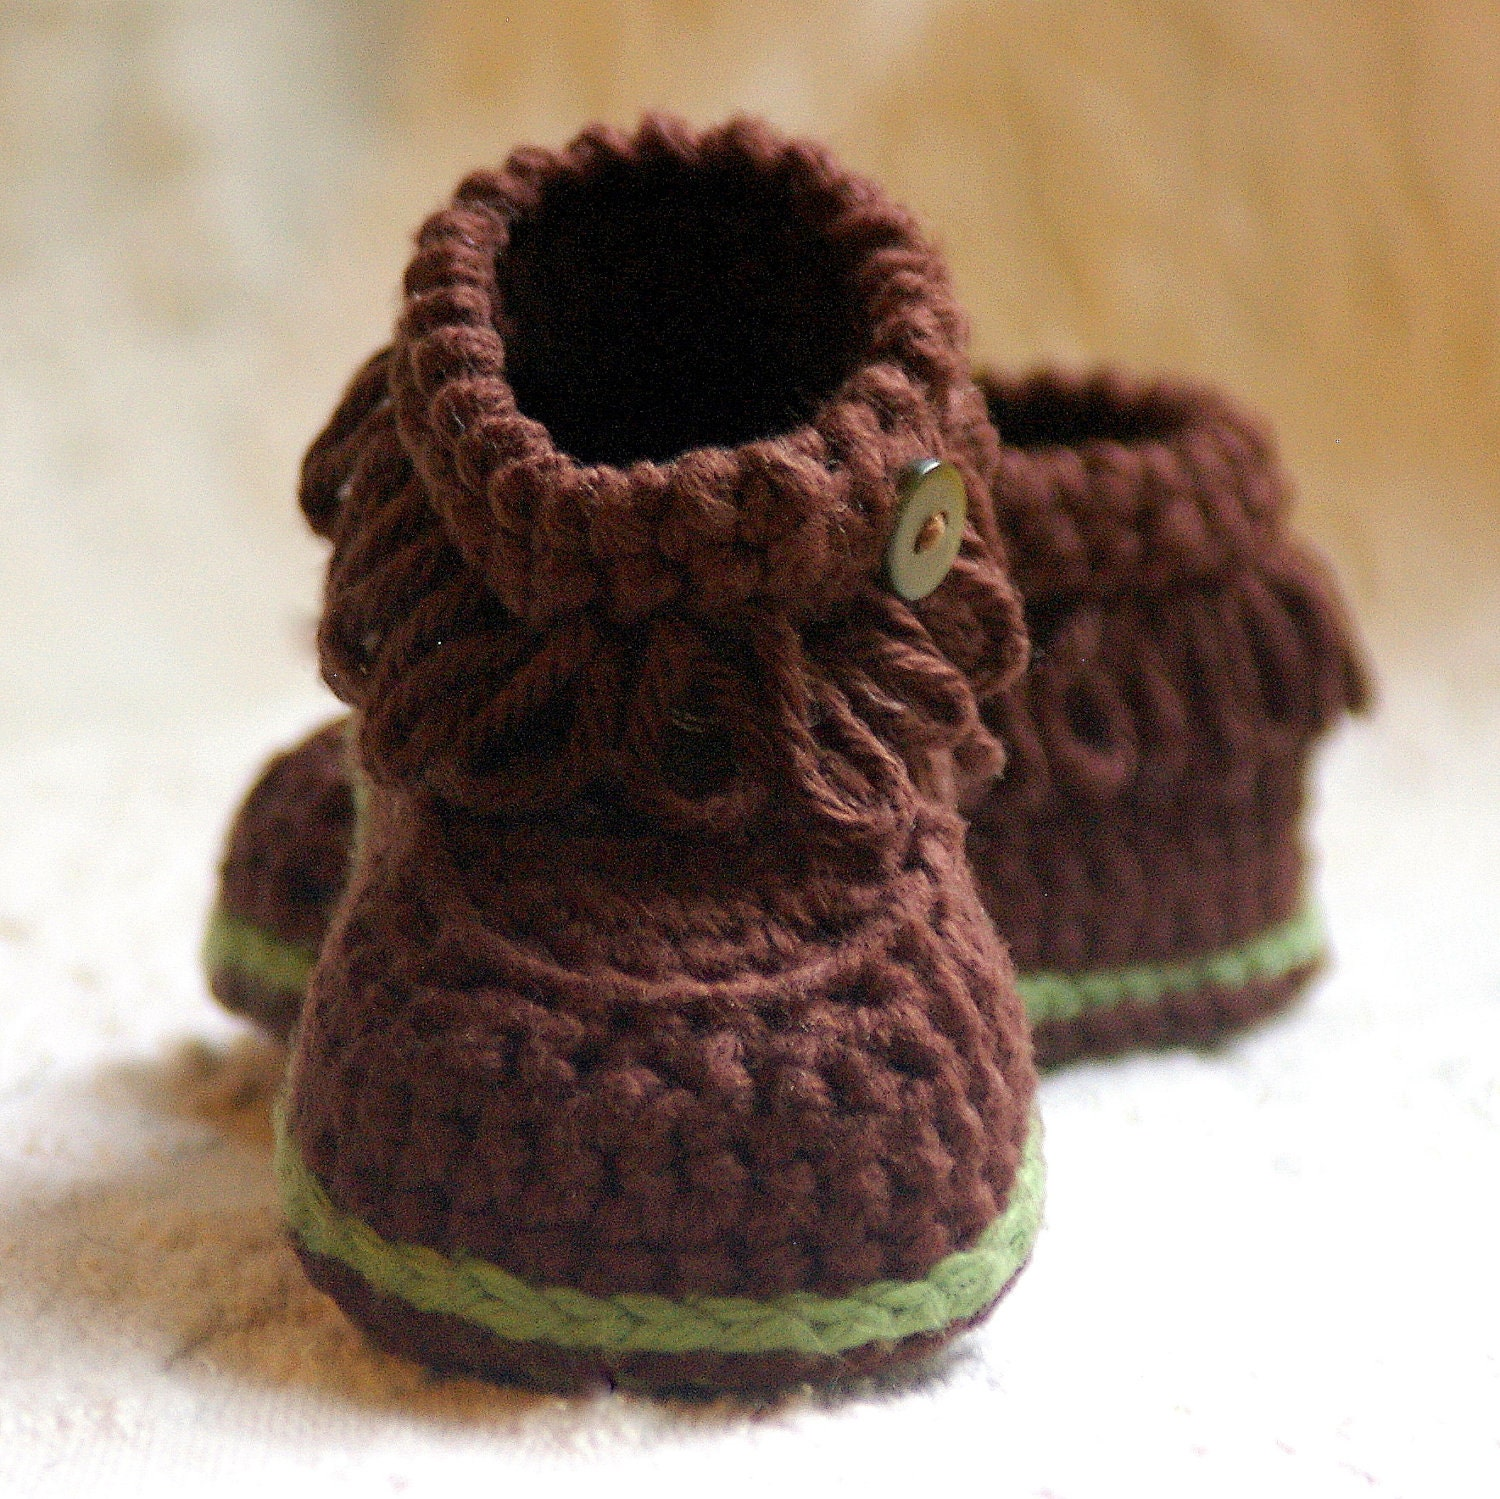 Crochet pattern fringe baby booties pattern number 207 zoom bankloansurffo Choice Image